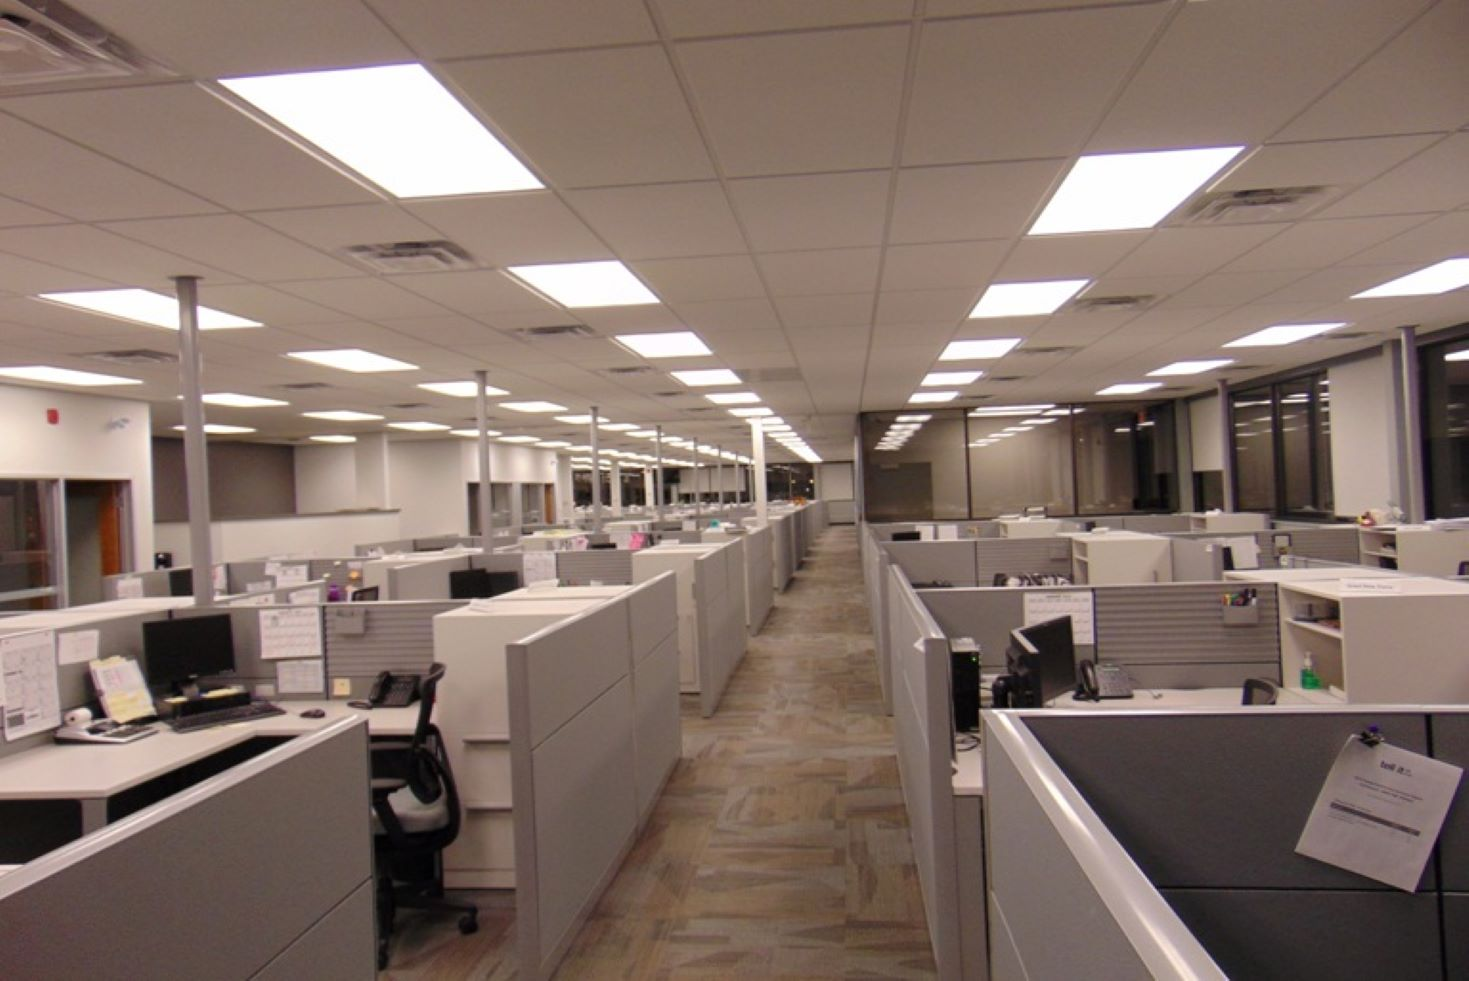 28,000 sq.ft. – Office Renovation